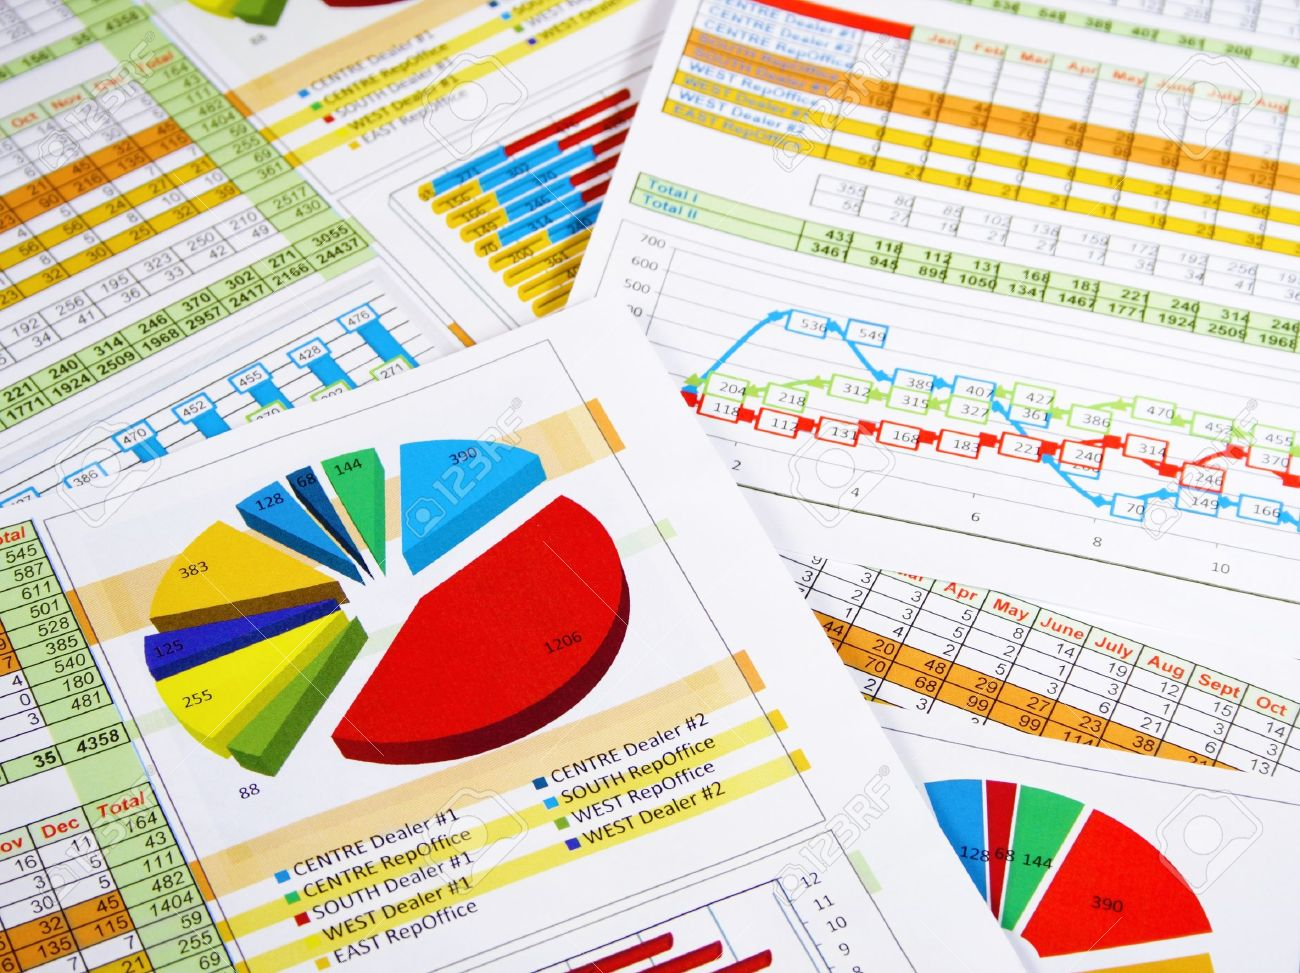 Printed Annual Report in Charts and Diagrams Stock Photo - 13039264